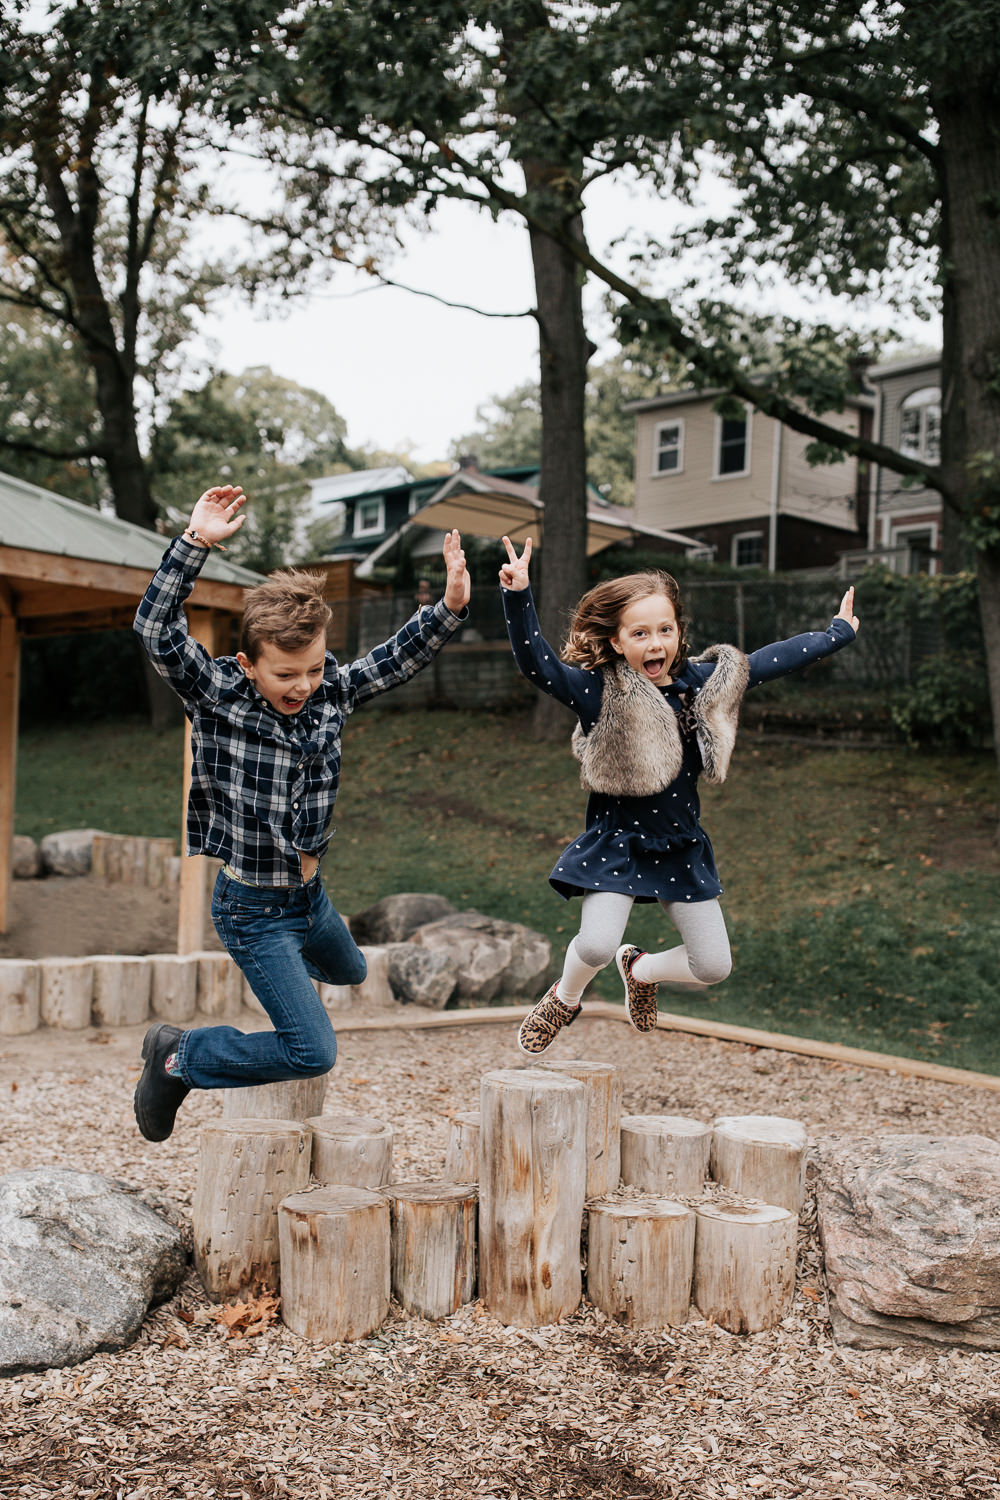 7 year old girl and 9 year old boy jumping off tree stumps at park, arms in air, mouths open, smiling, little sister looking at camera -York Region Lifestyle Photos